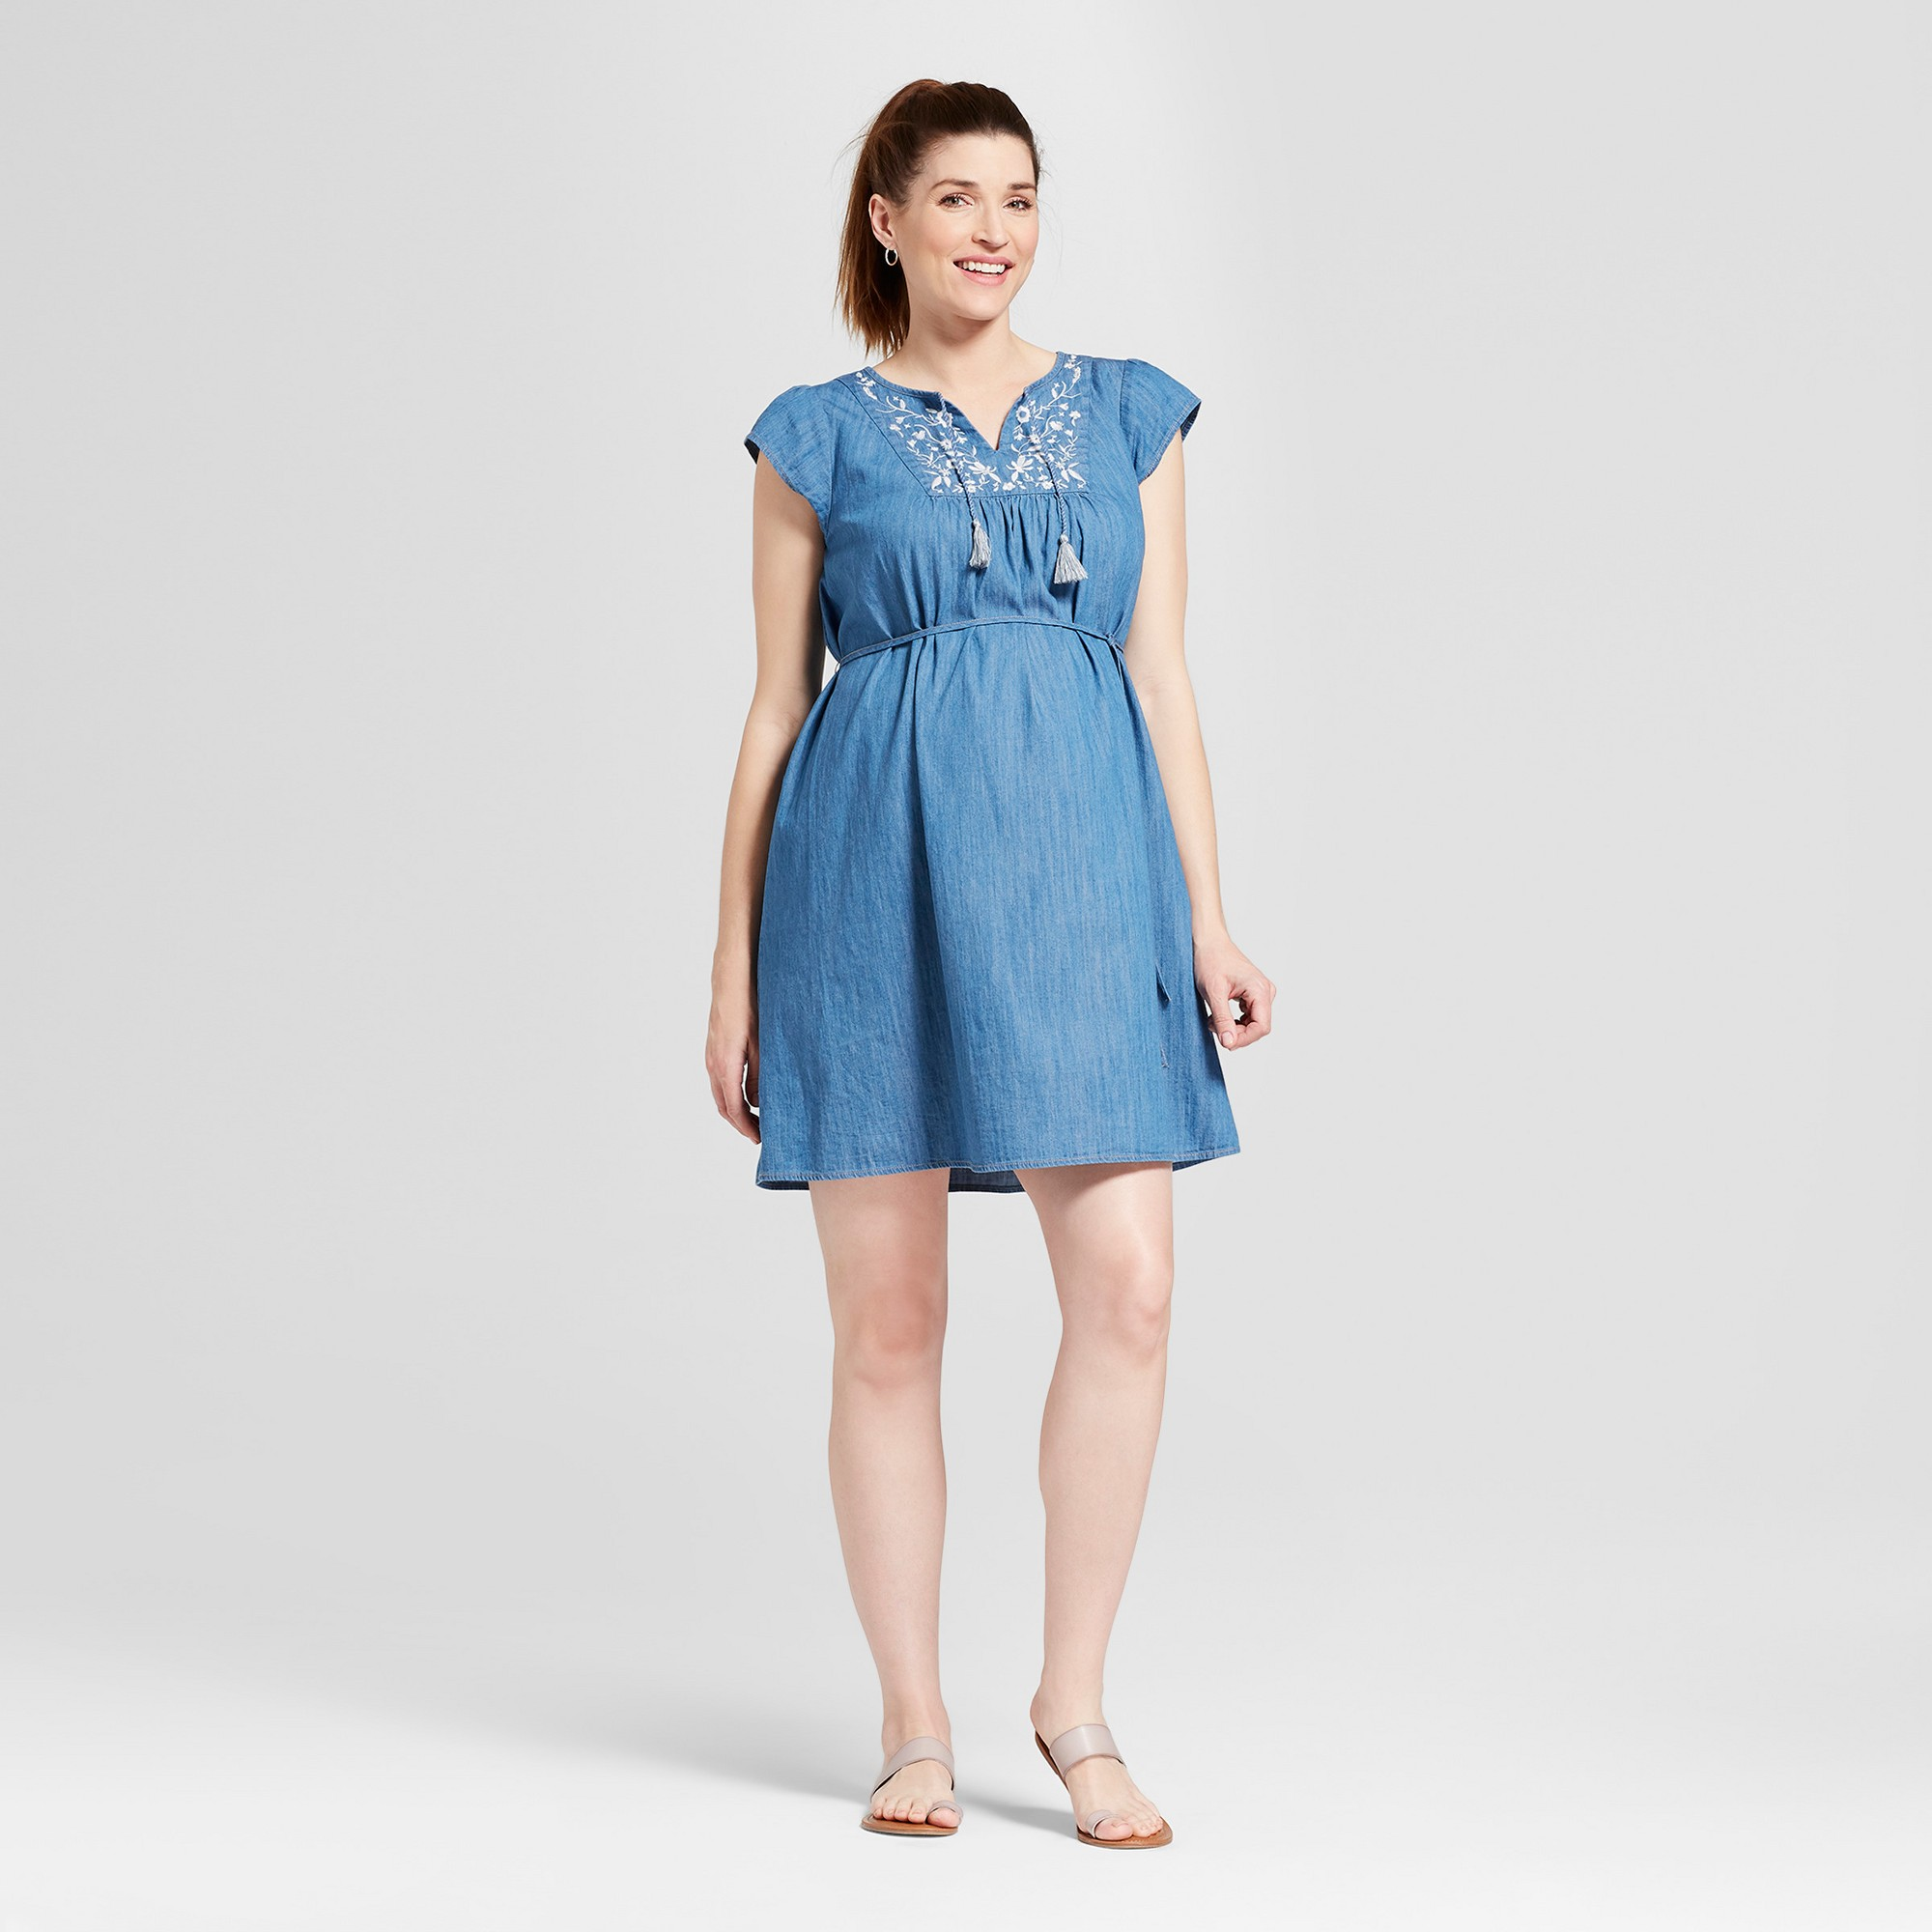 5200b05edc1 Maternity Embroidered Denim Dress - Isabel Maternity by Ingrid   Isabel  Chambray M